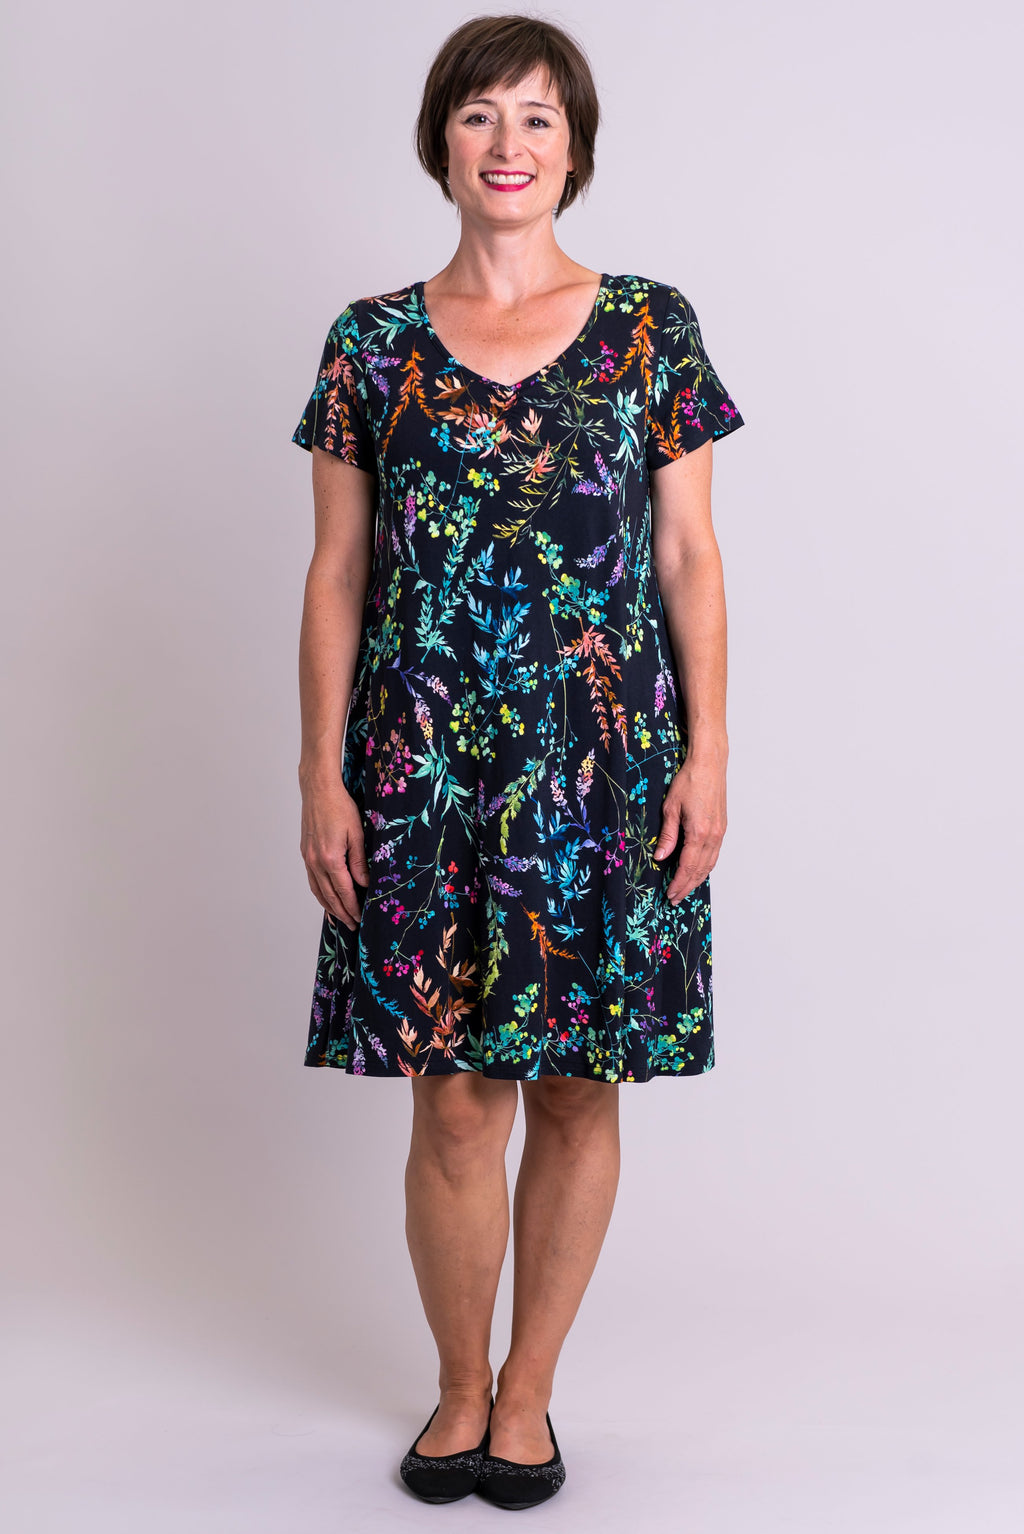 Nala Dress, Rainbow Valley, Bamboo - Blue Sky Clothing Co